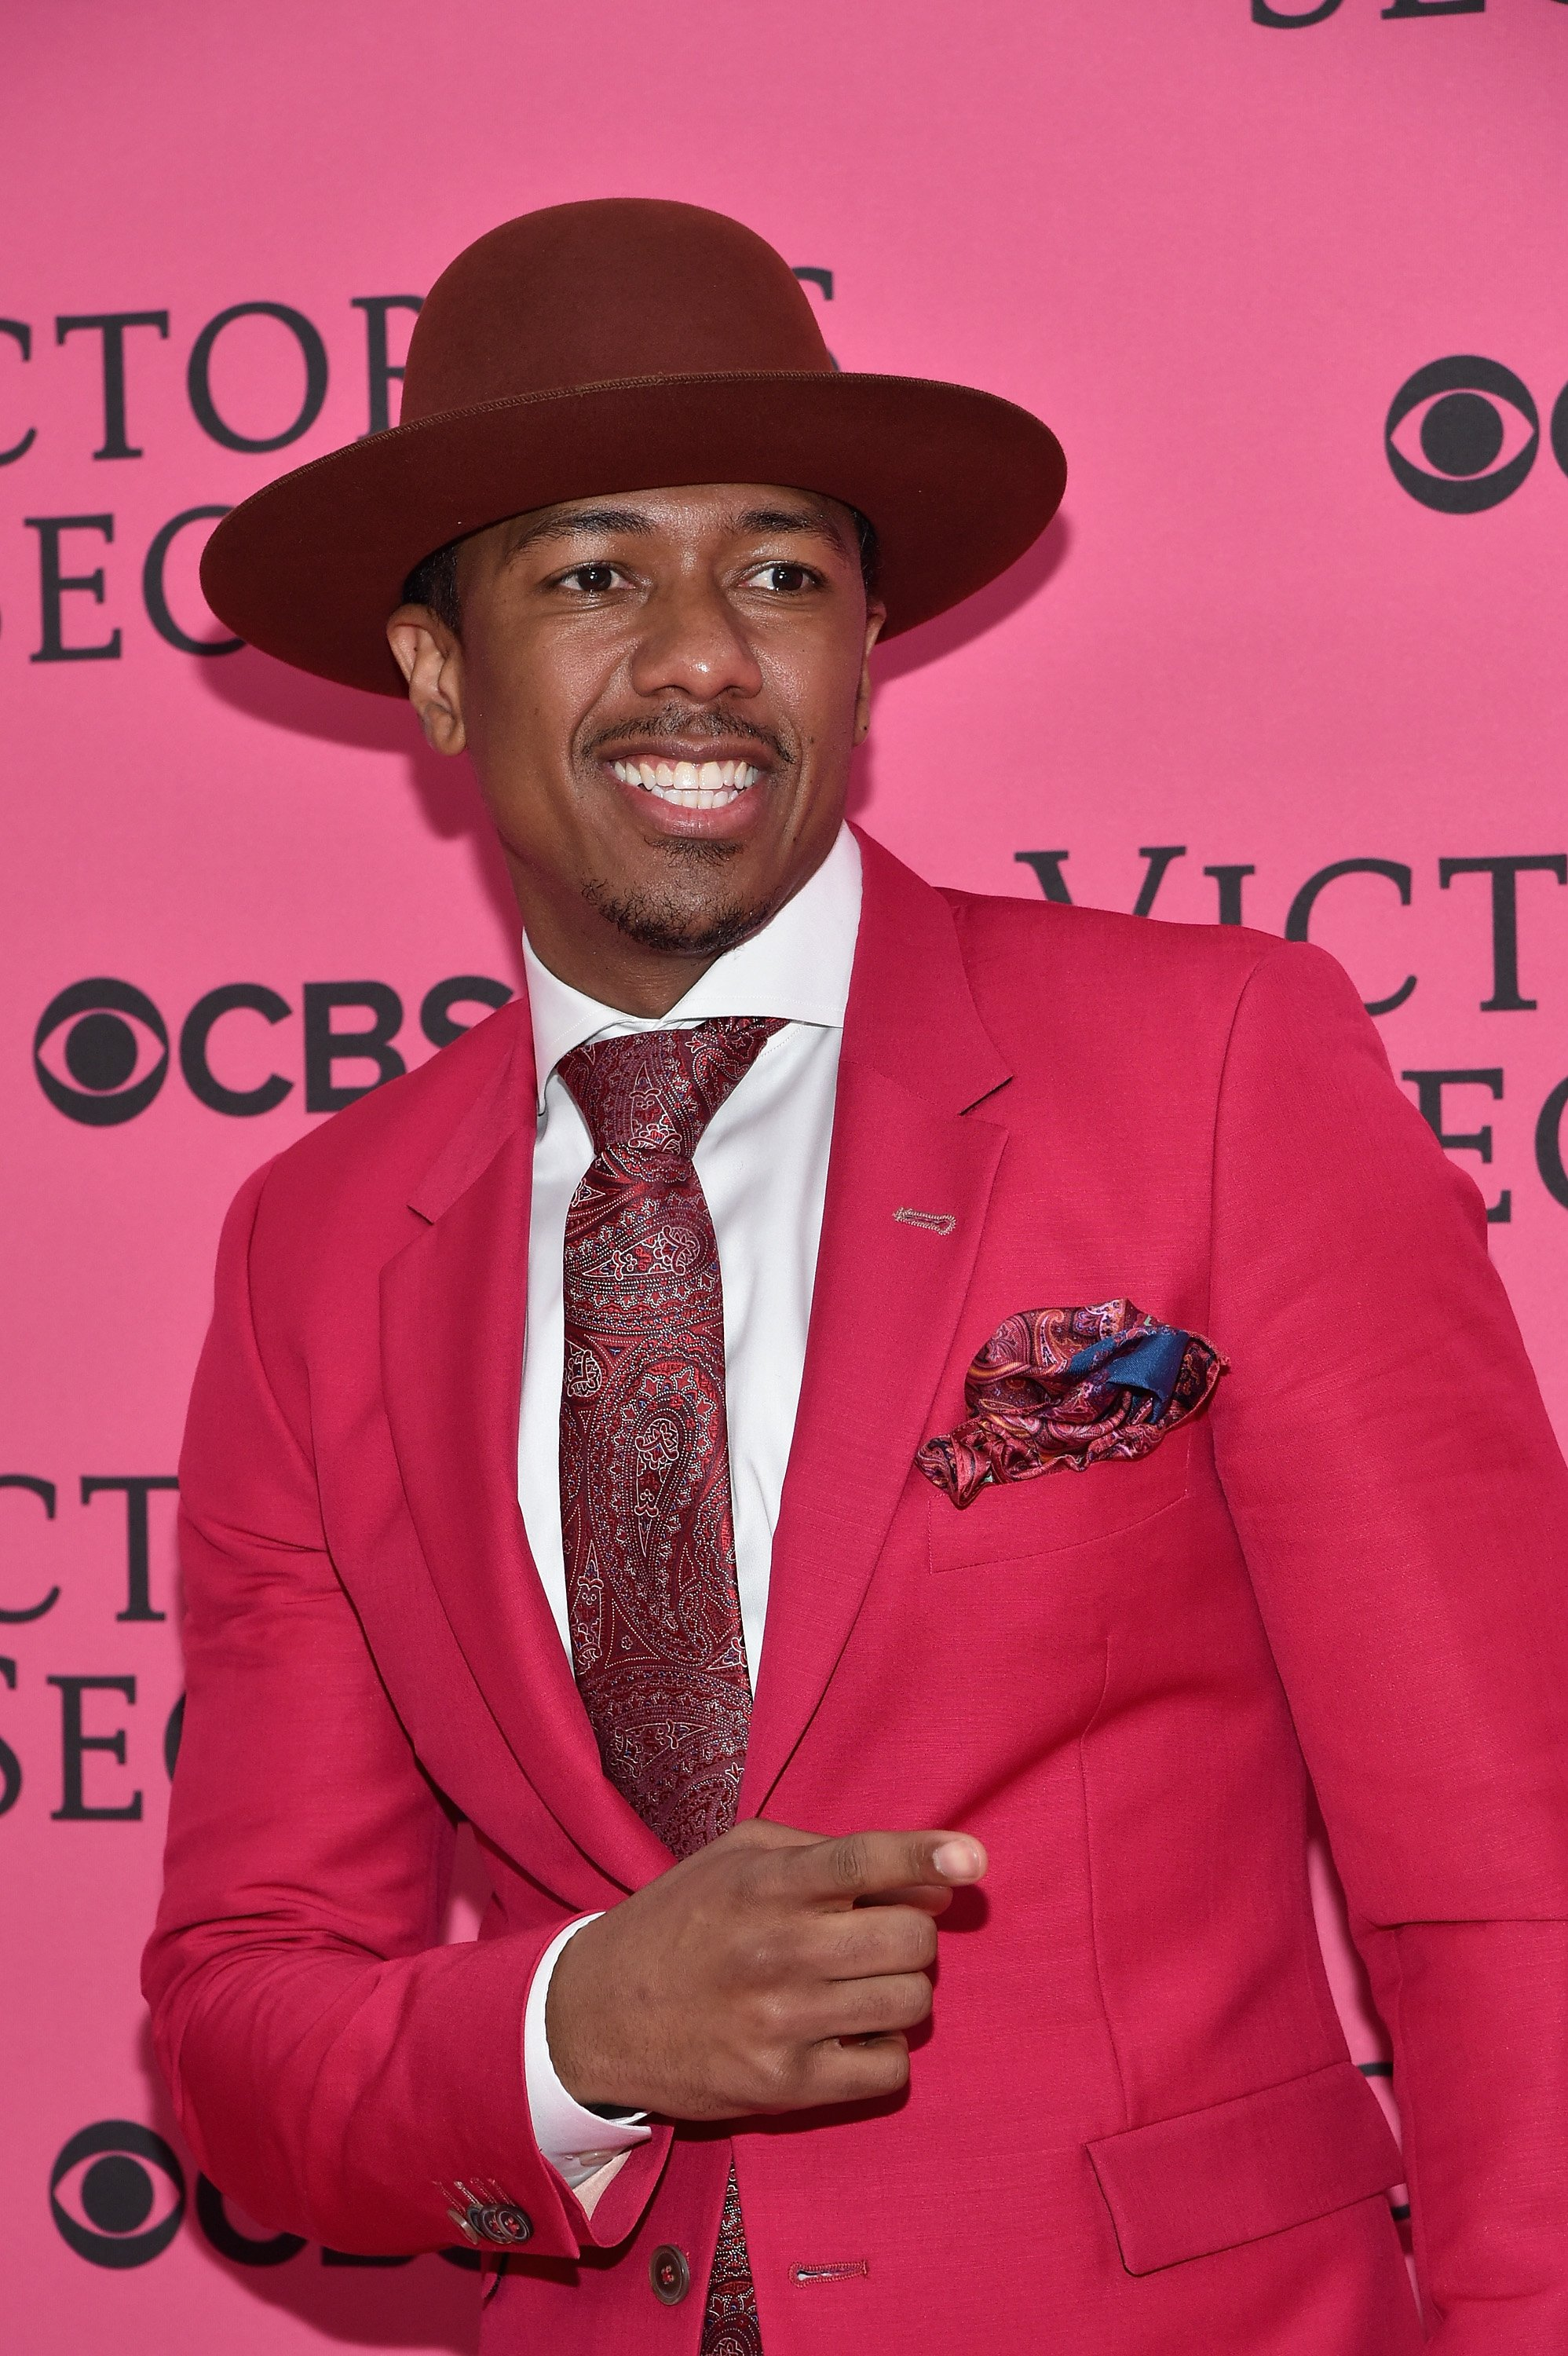 Nick Cannon attends Victoria's Secret Fashion Show at Lexington Avenue Armory on November 10, 2015 in New York City | Photo: Getty Images